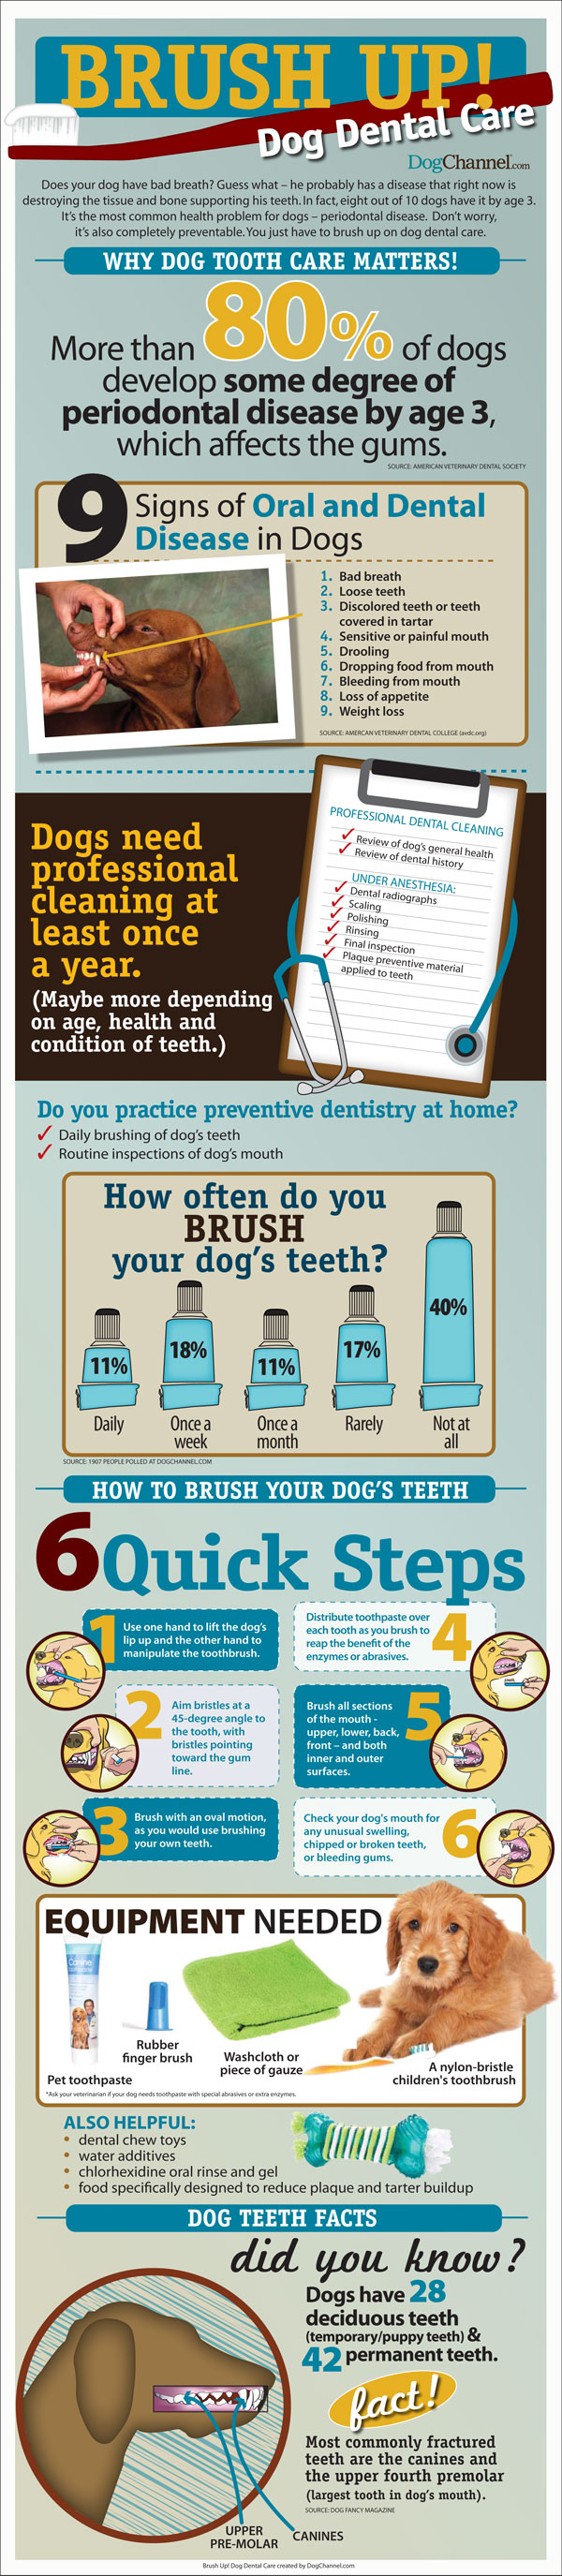 Brush up dog dental care